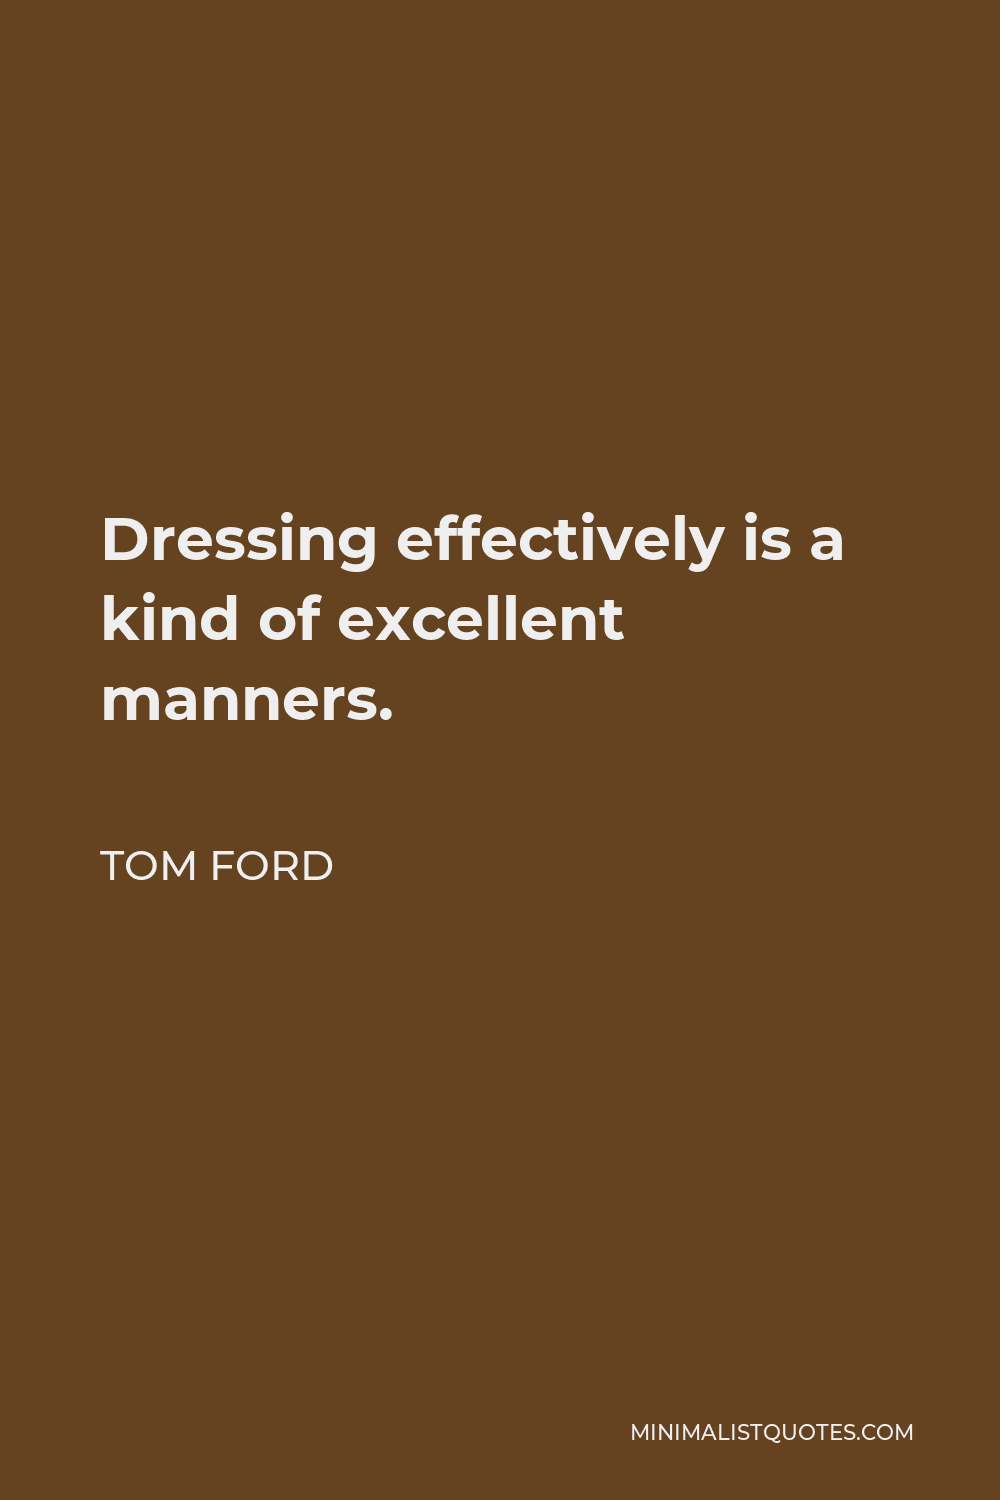 Tom Ford Quote - Dressing effectively is a kind of excellent manners.